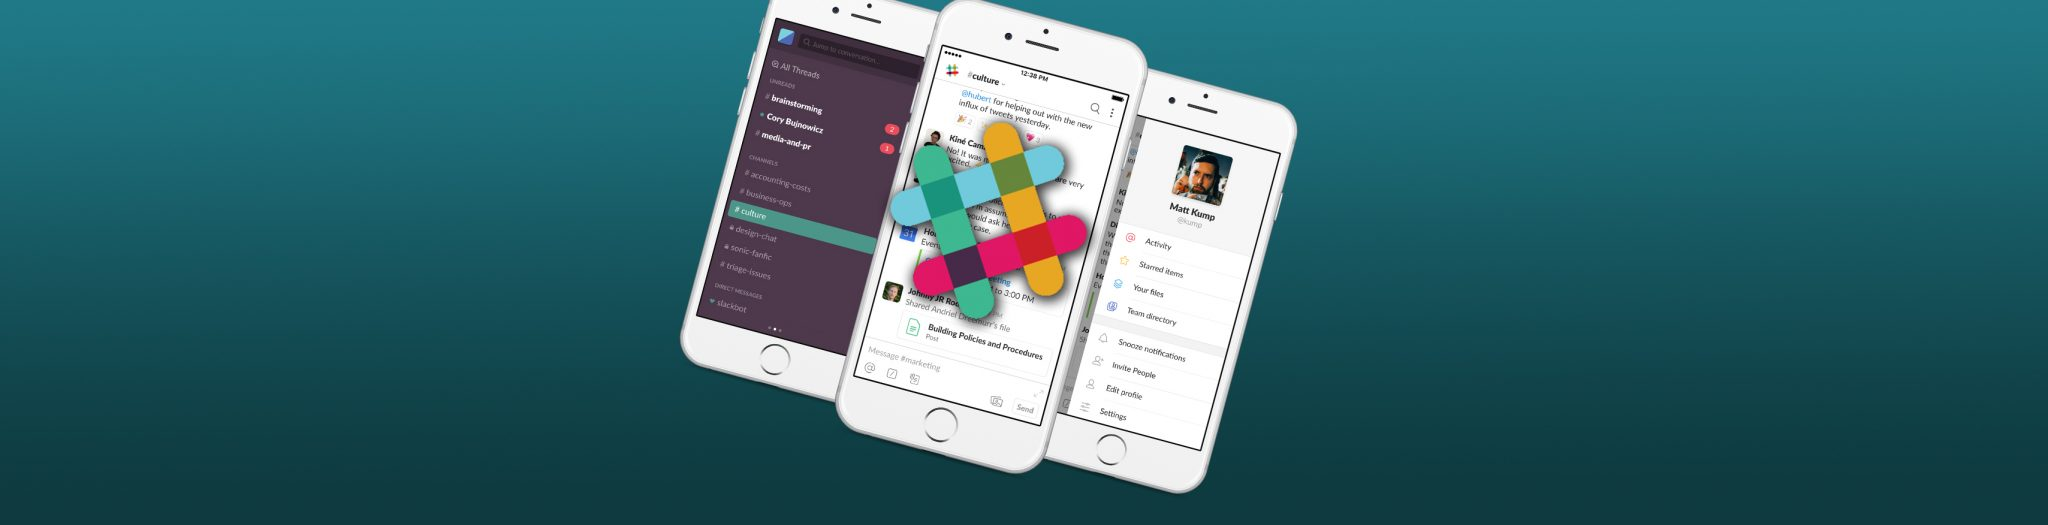 Slack's competition can't afford to slack off in the office